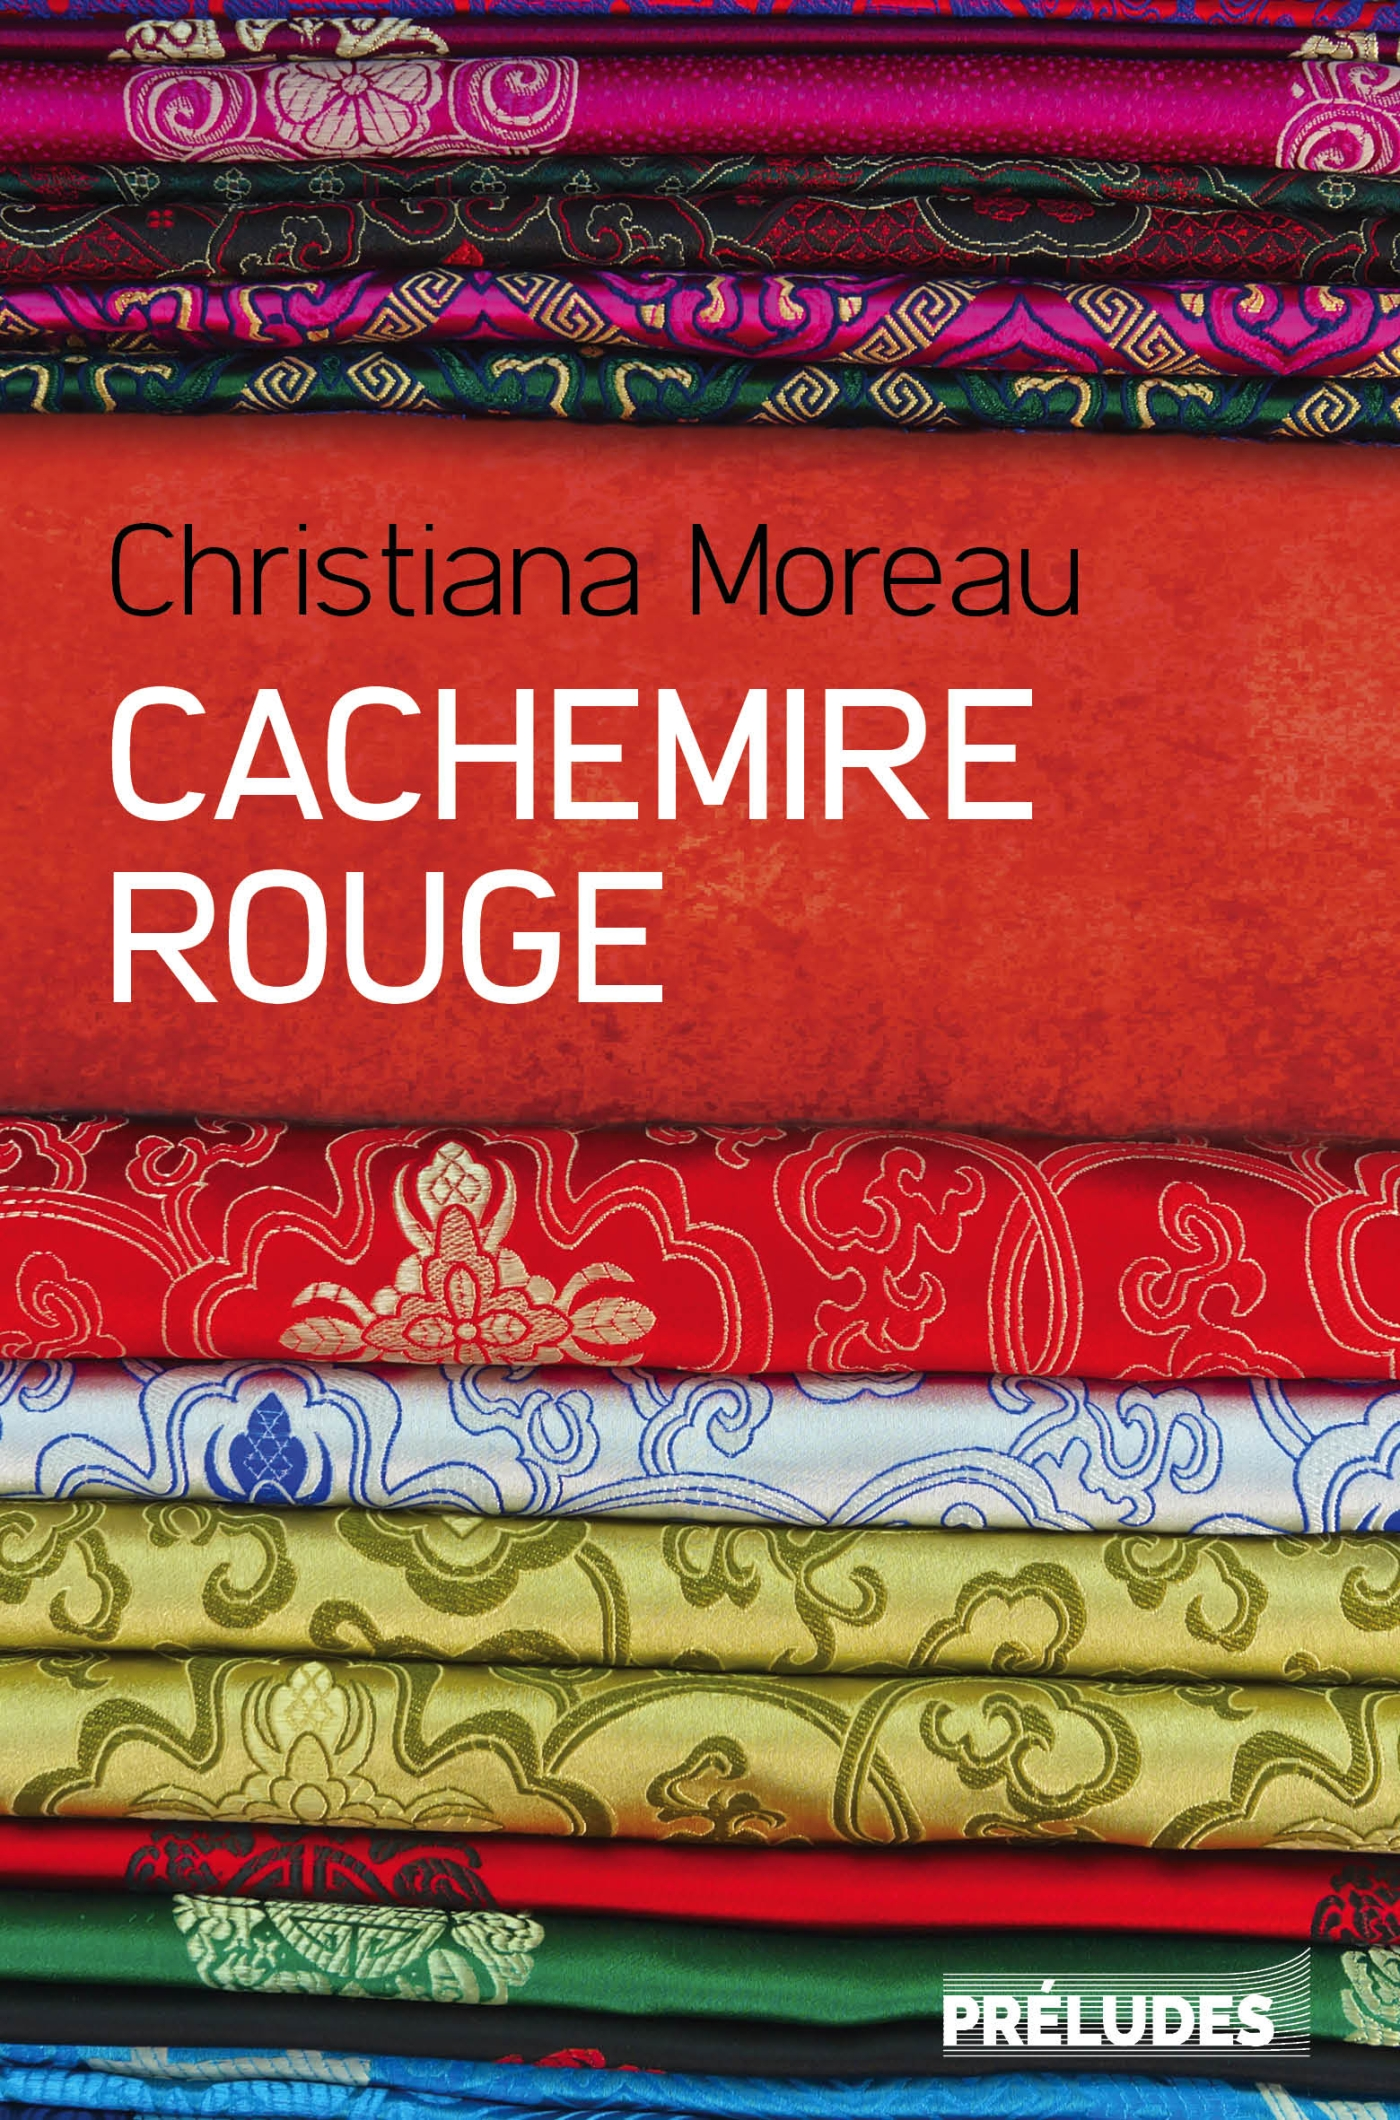 Cachemire rouge